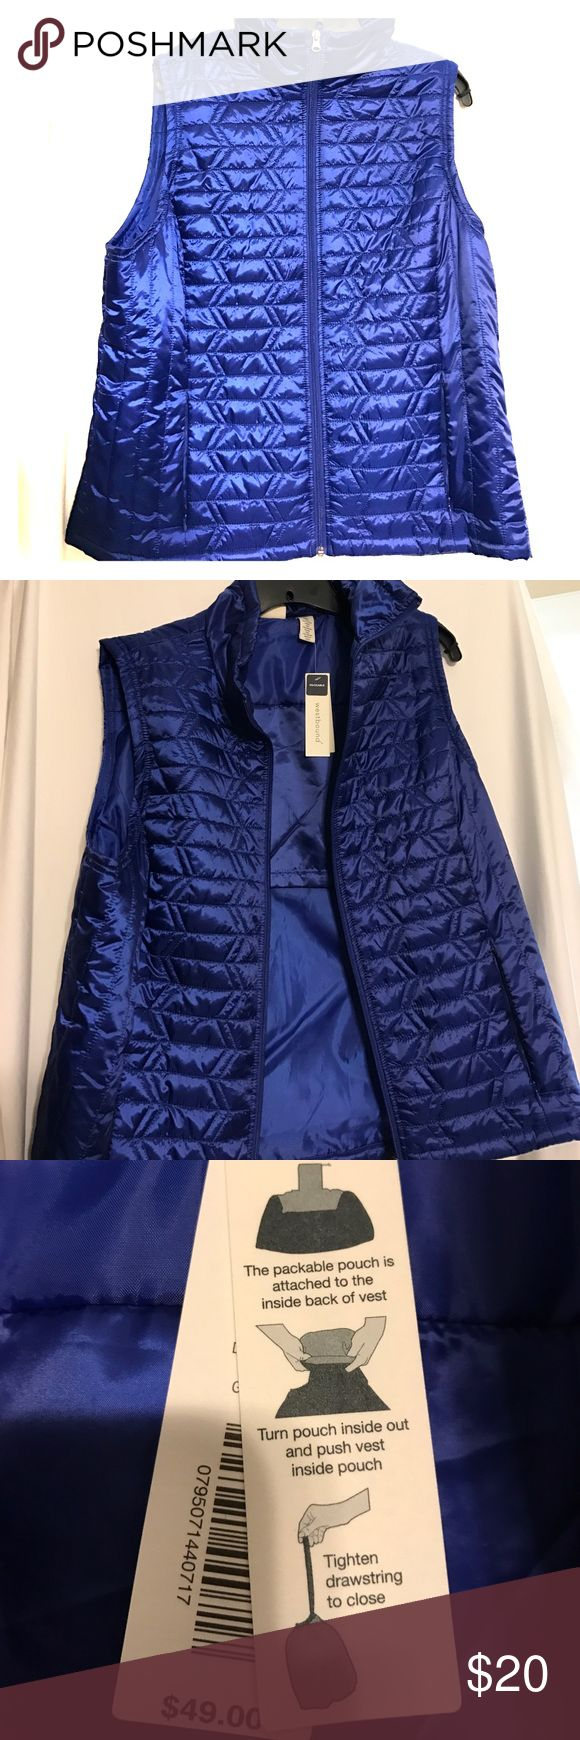 ‼️TODAY ONLY‼️ NWT Westbound Packable Vest Gorgeous blue vest, zips up the front, & has an attached pouch for packing! Westbound Jackets & Coats Vests